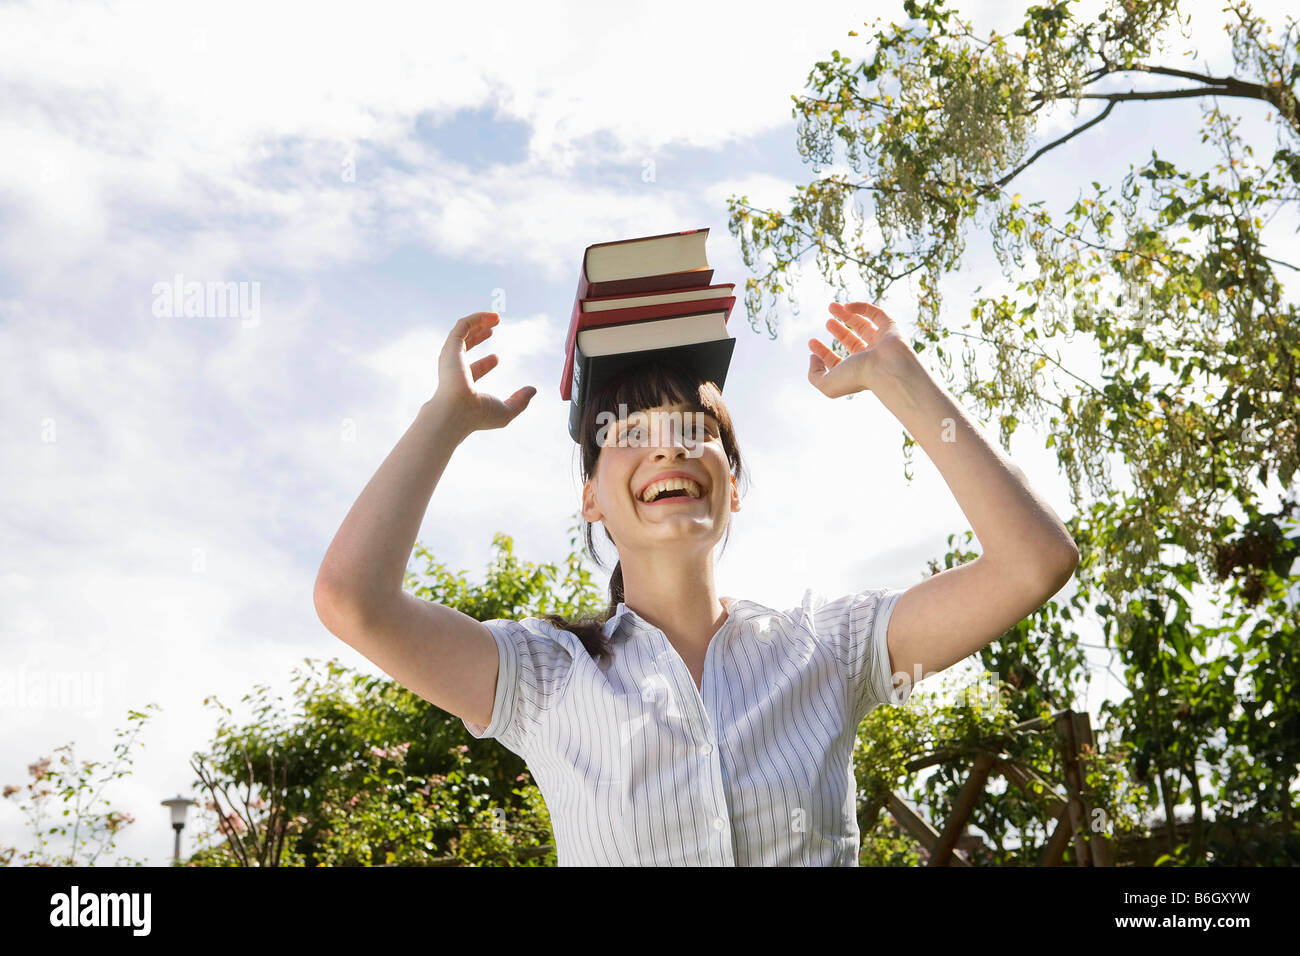 Woman balancing books on head, rire Banque D'Images